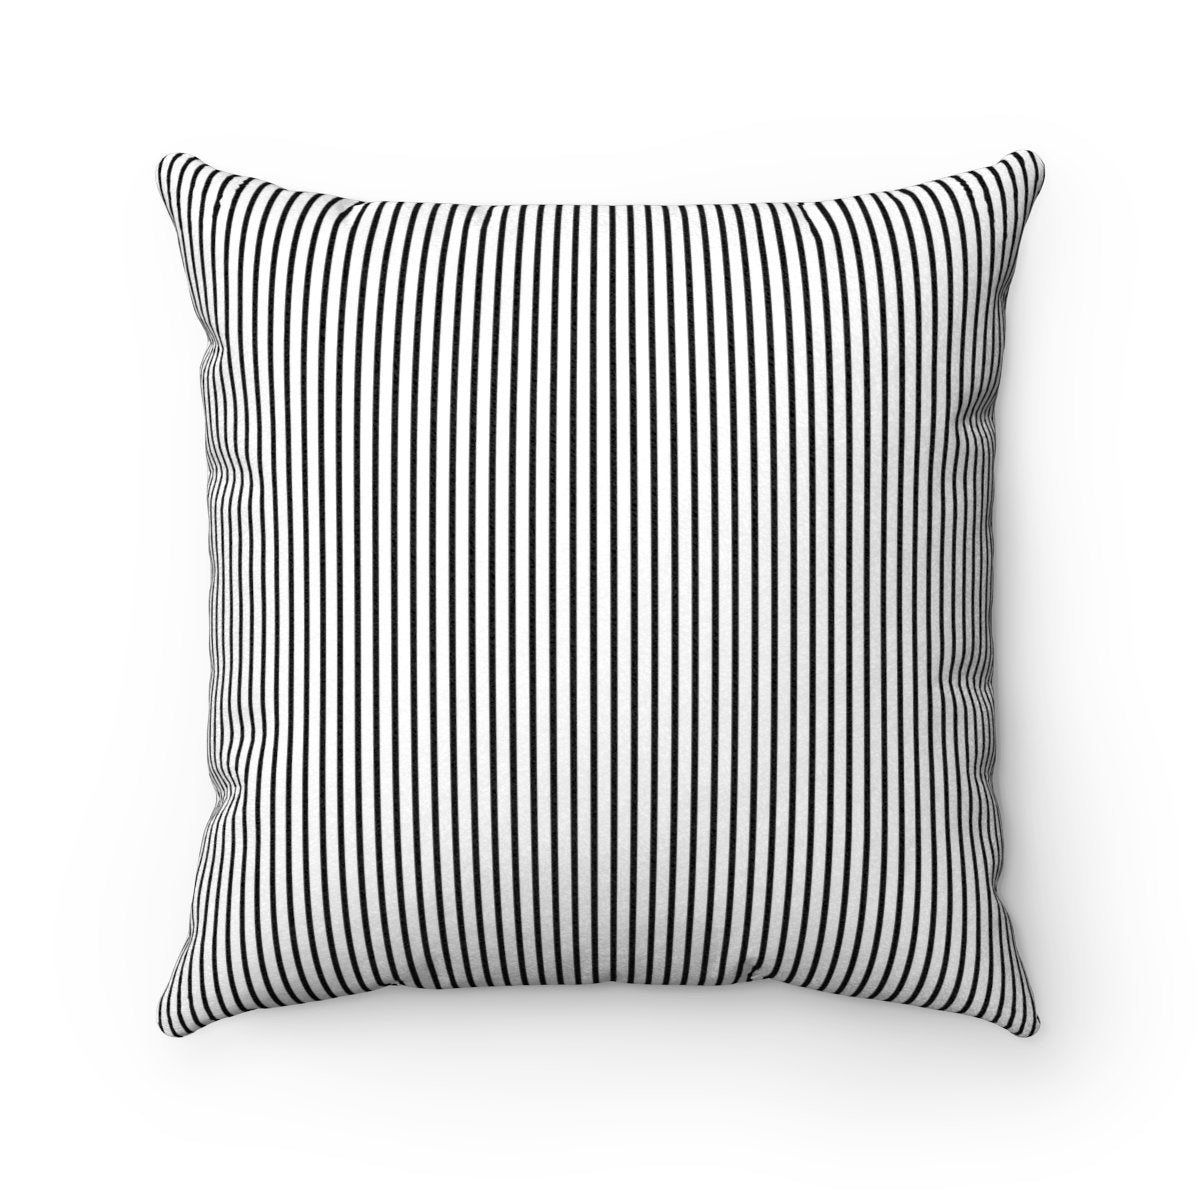 Striped Faux suede decorative cushion gift for mom-Home Decor - Decorative Accents - Pillows & Throws - Decorative Pillows-Maison d'Elite-14x14-Très Elite